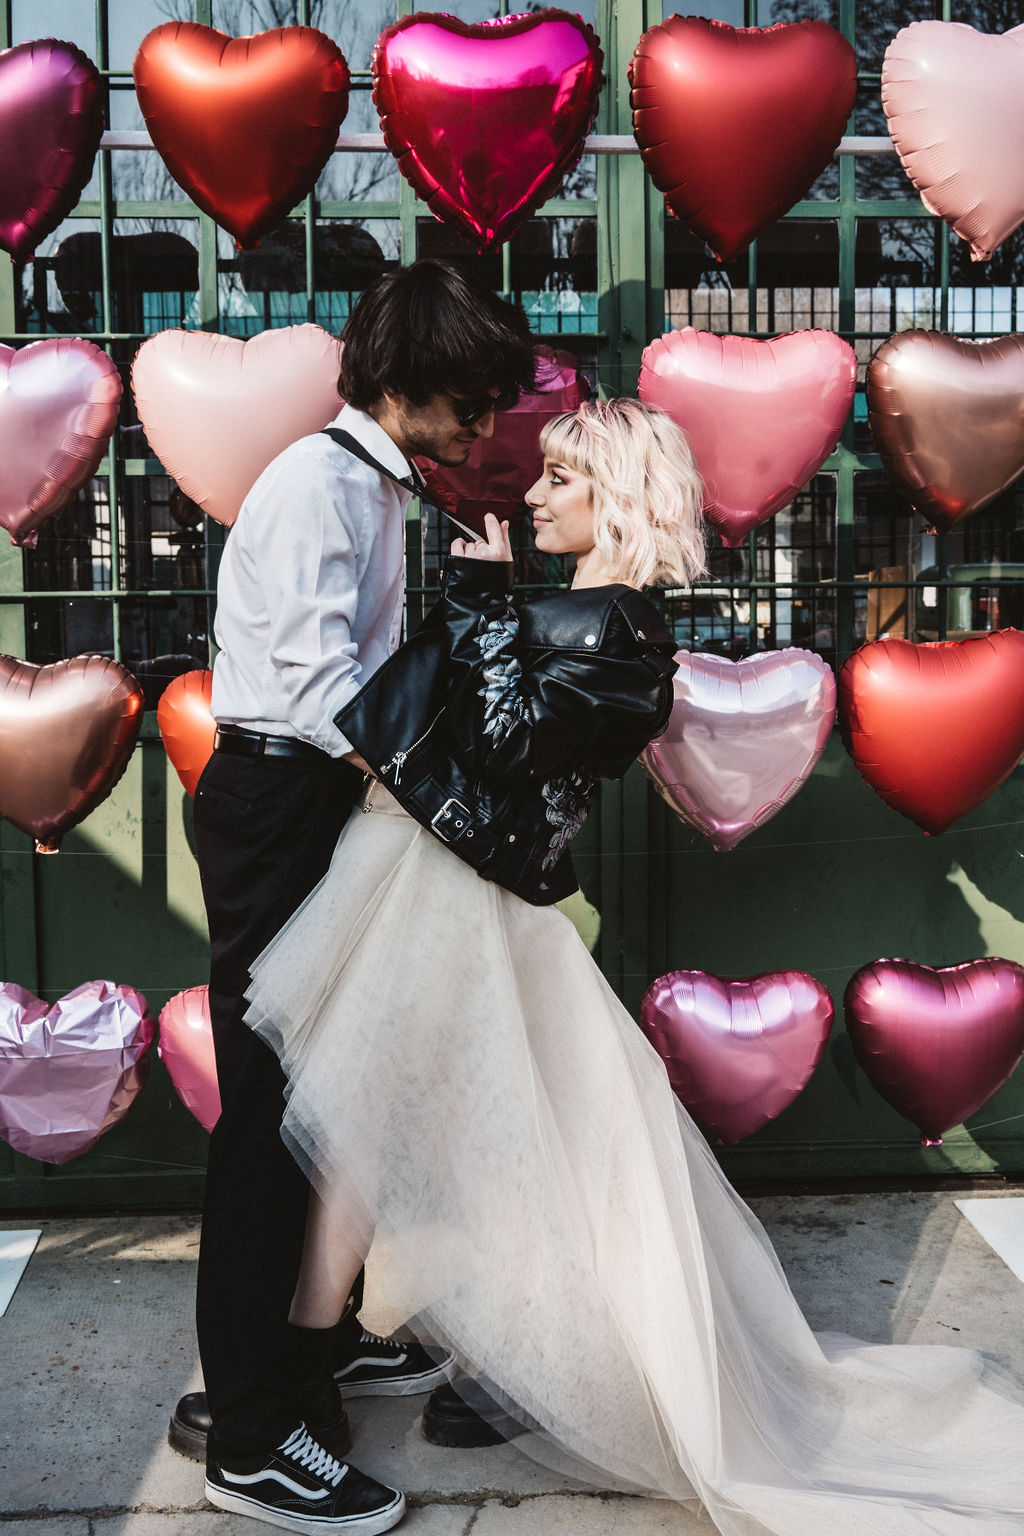 modern industrial wedding - alternative wedding - unconventional wedding - edgy wedding - funky wedding backdrop - heart shaped wedding balloons - alternative wedding balloons